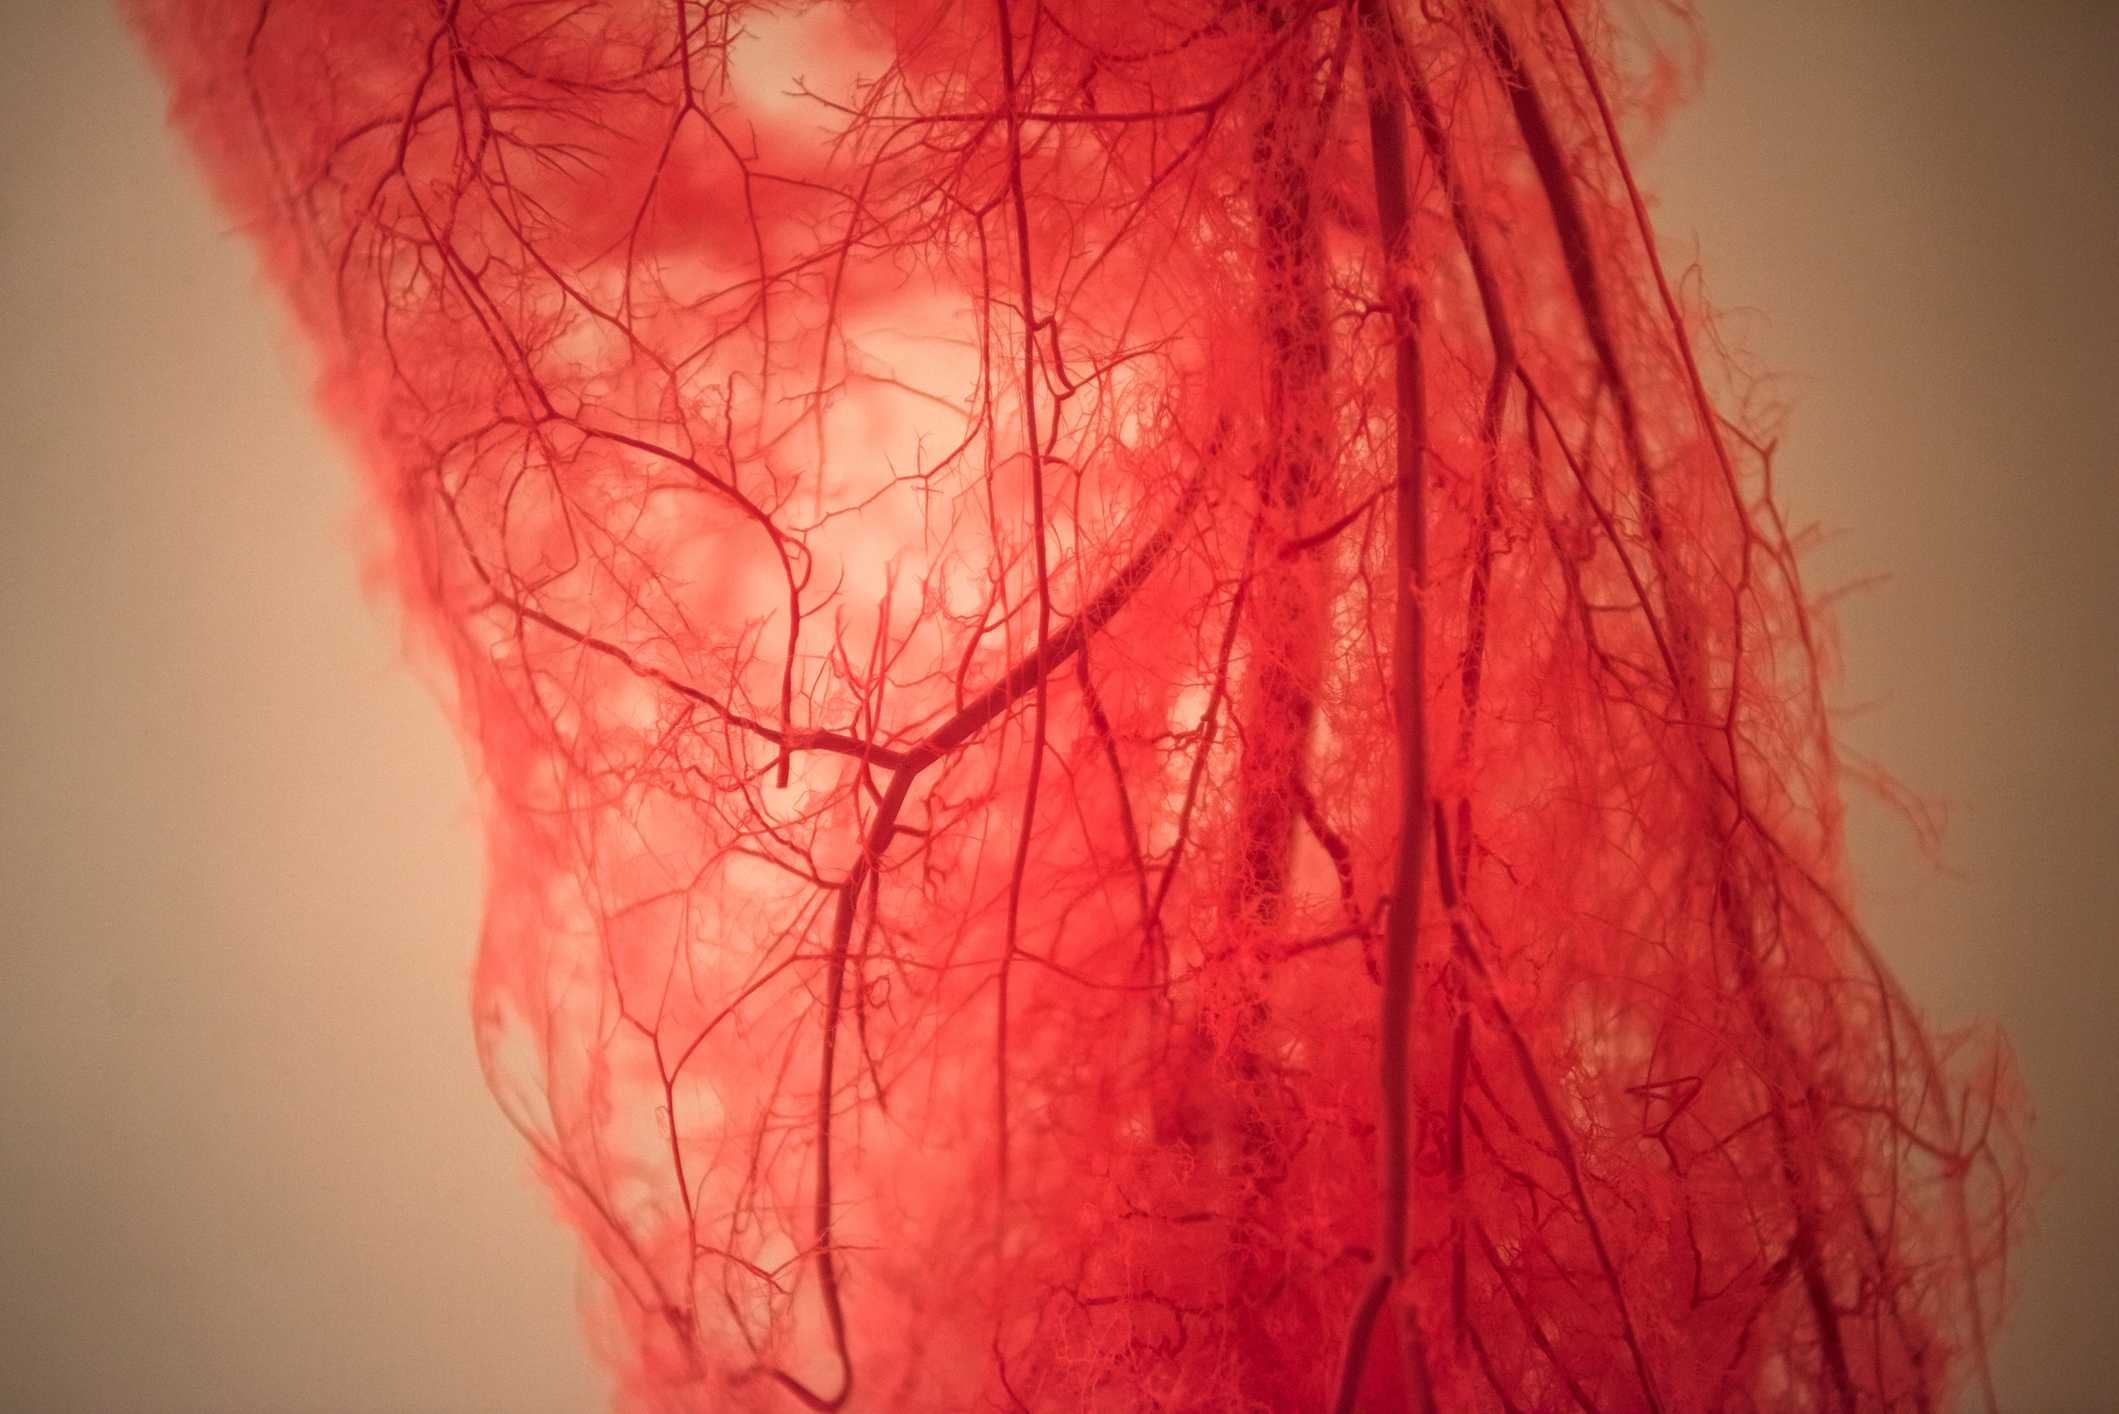 Diabetes and The Vascular System